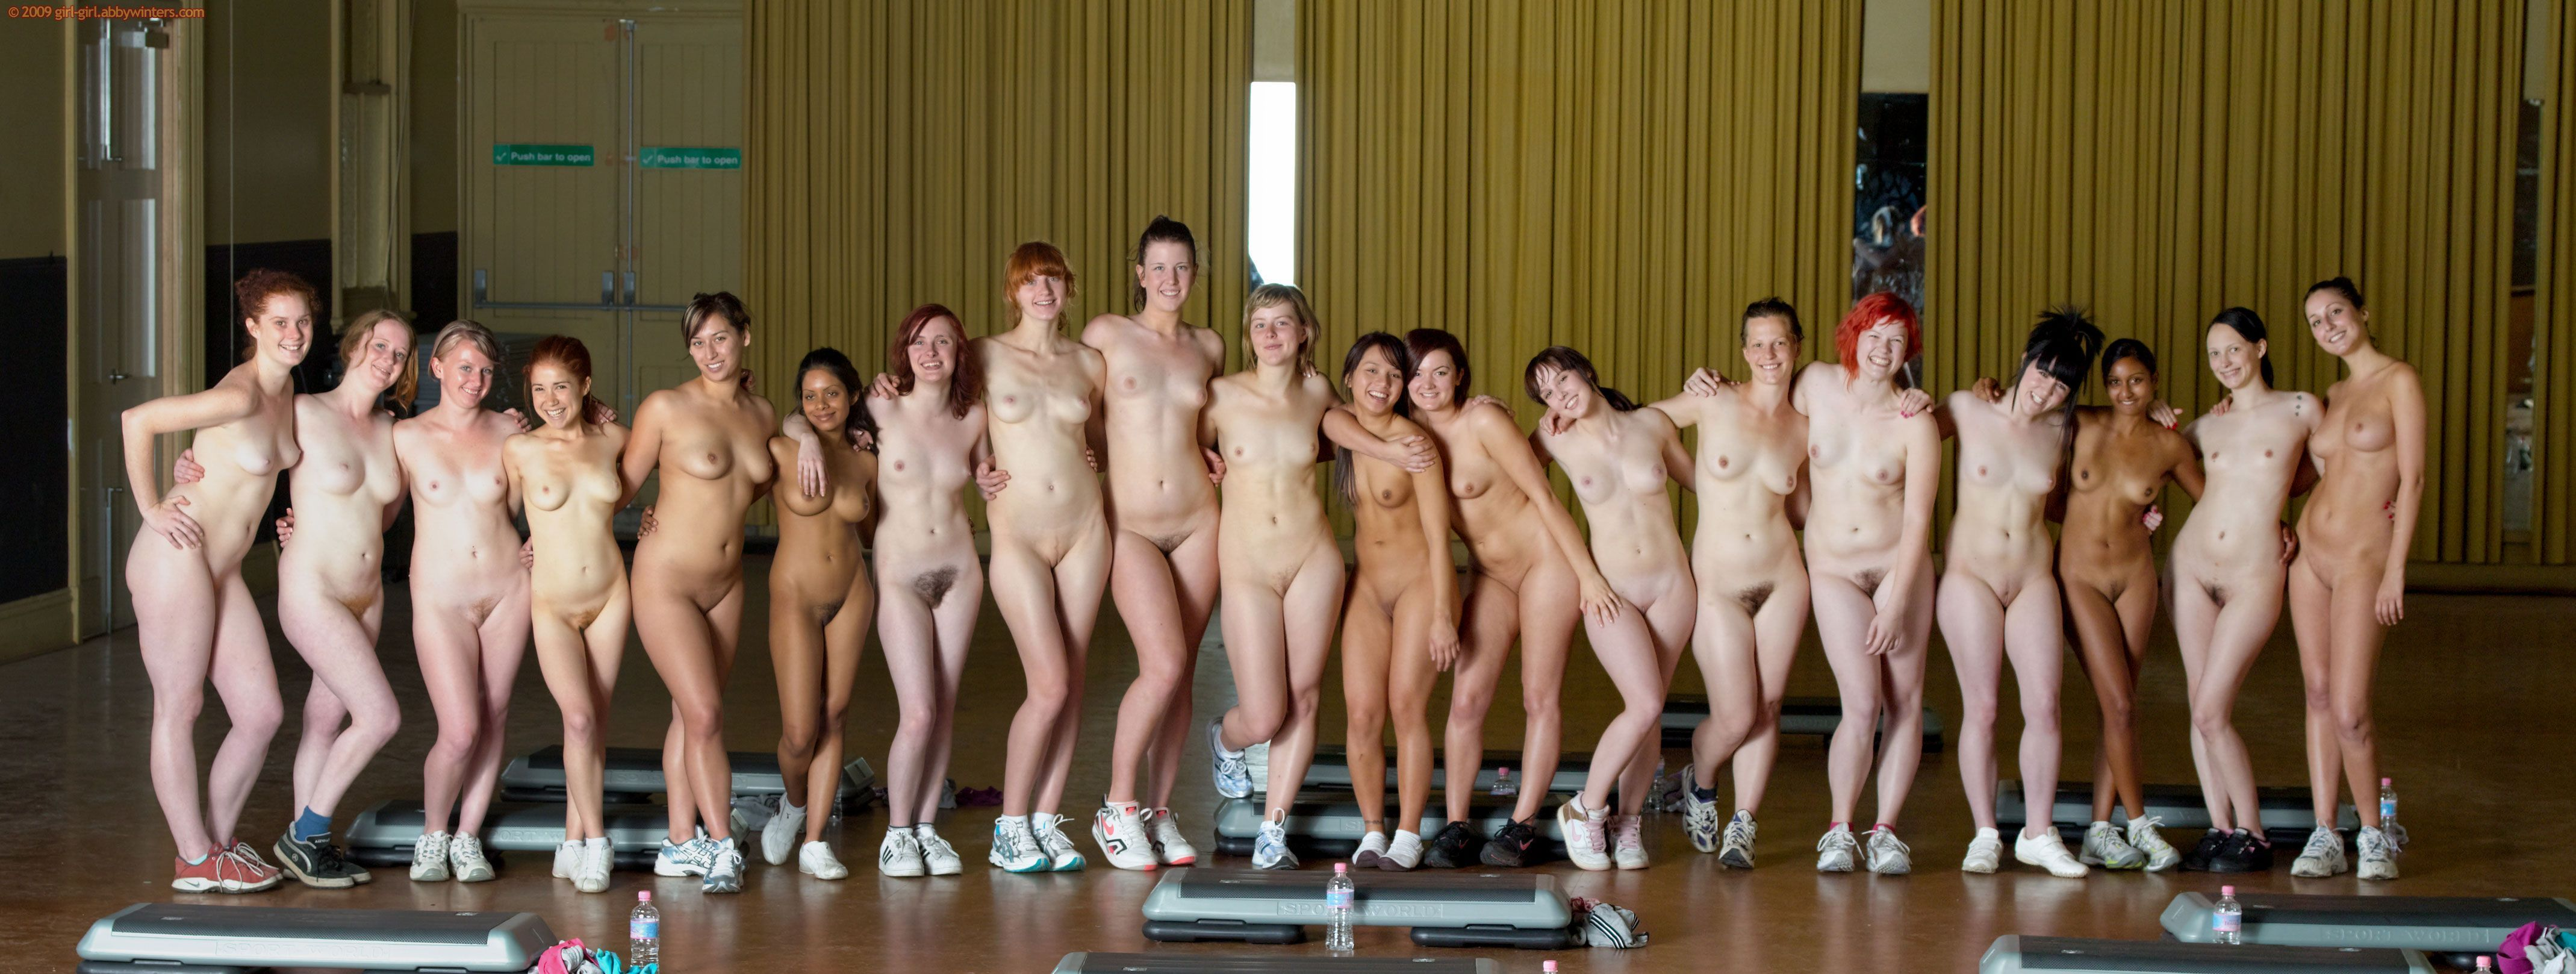 Suburban slut wives sharing pictures · best of The nude in Aerobic